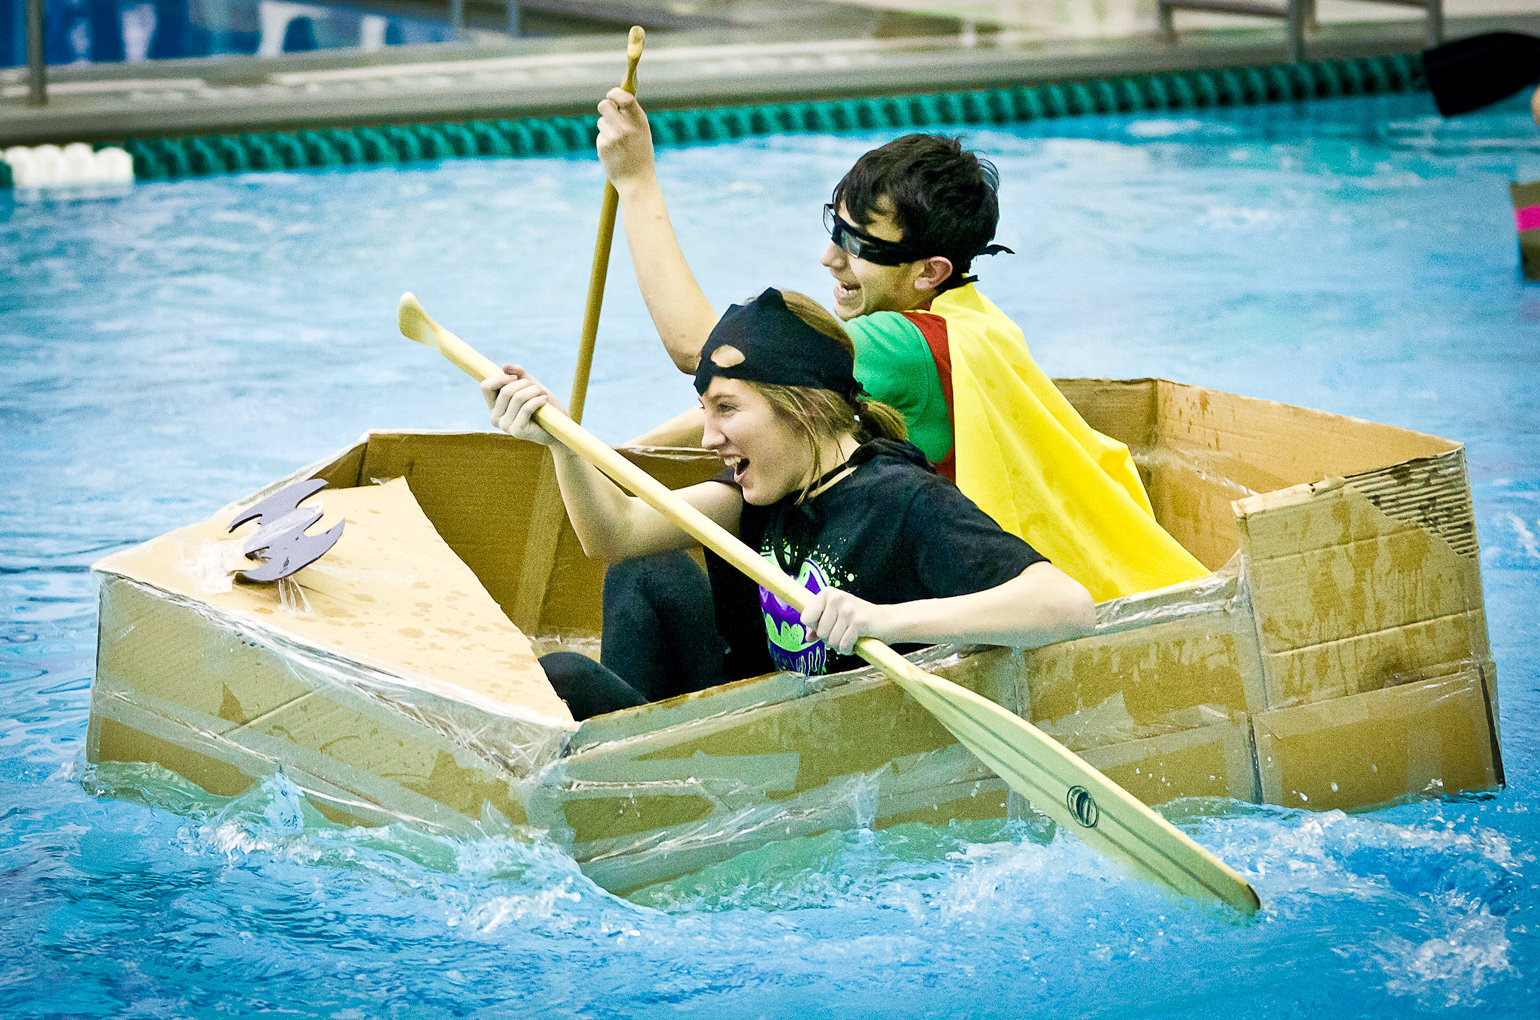 Fun On A Sinking Ship In Mayfield Photo Of The Day